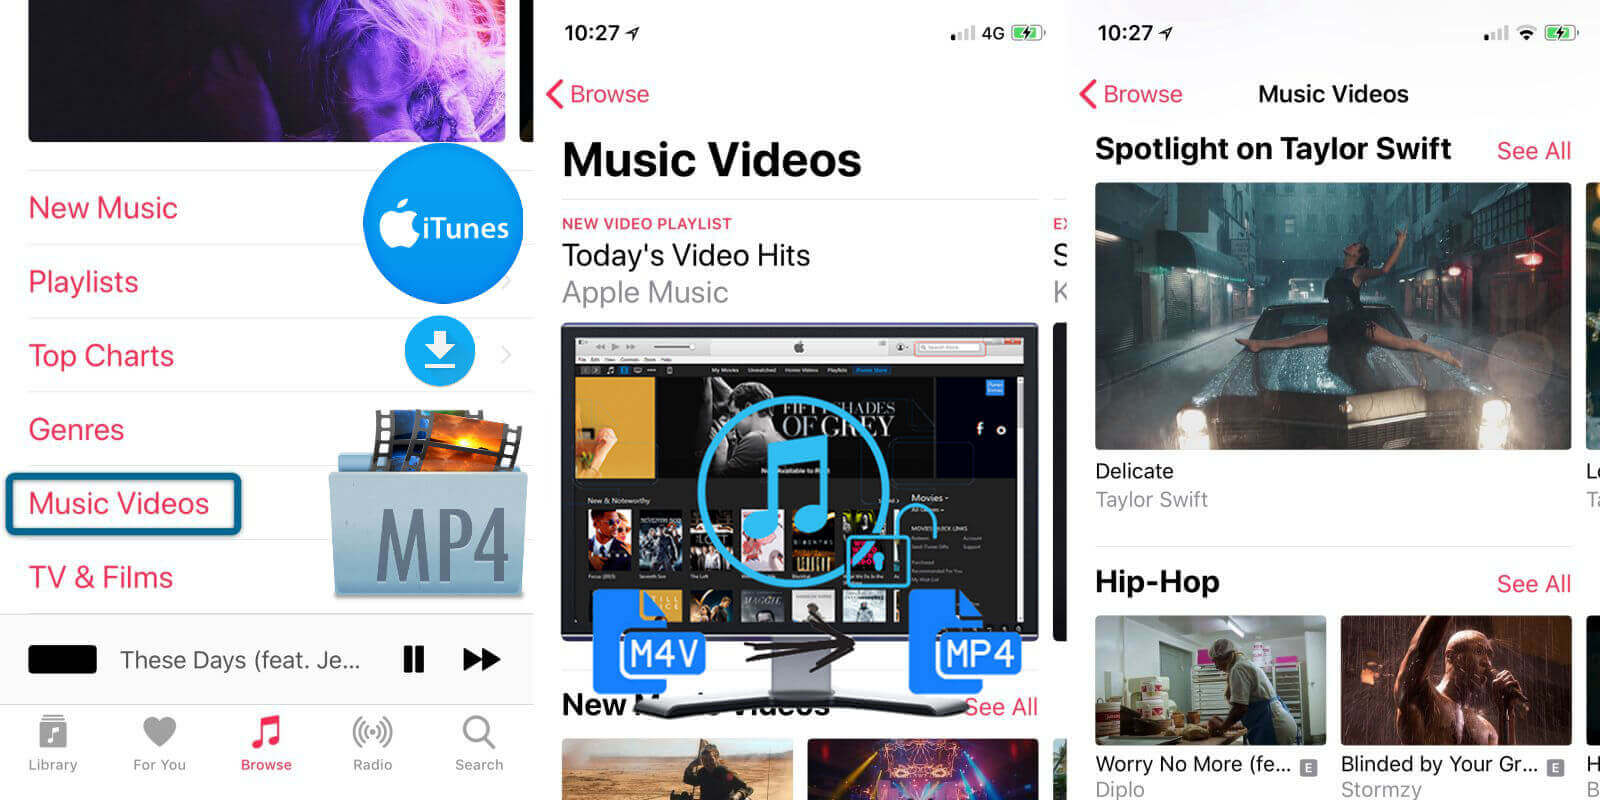 How to Download Apple Music Video to MP4 from iTunes Store